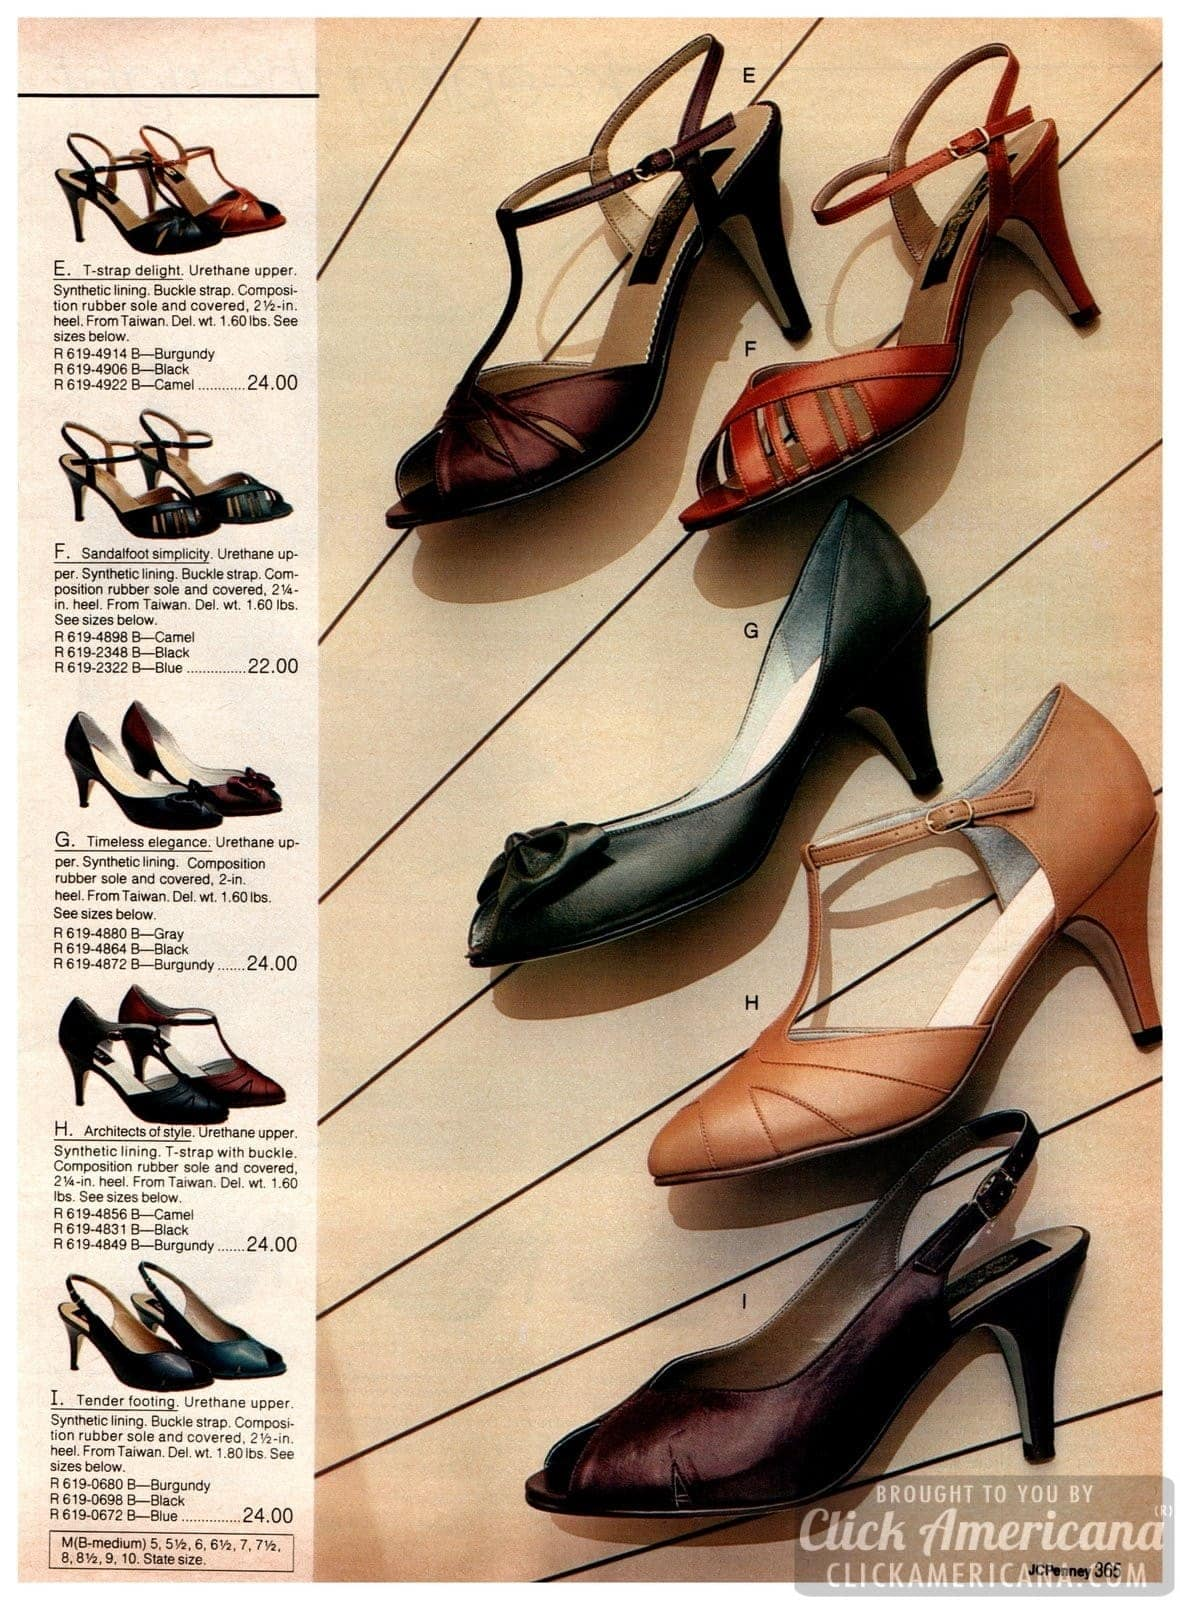 Retro '80s T-strap sandals, high and low heels, and pumps with bow fronts